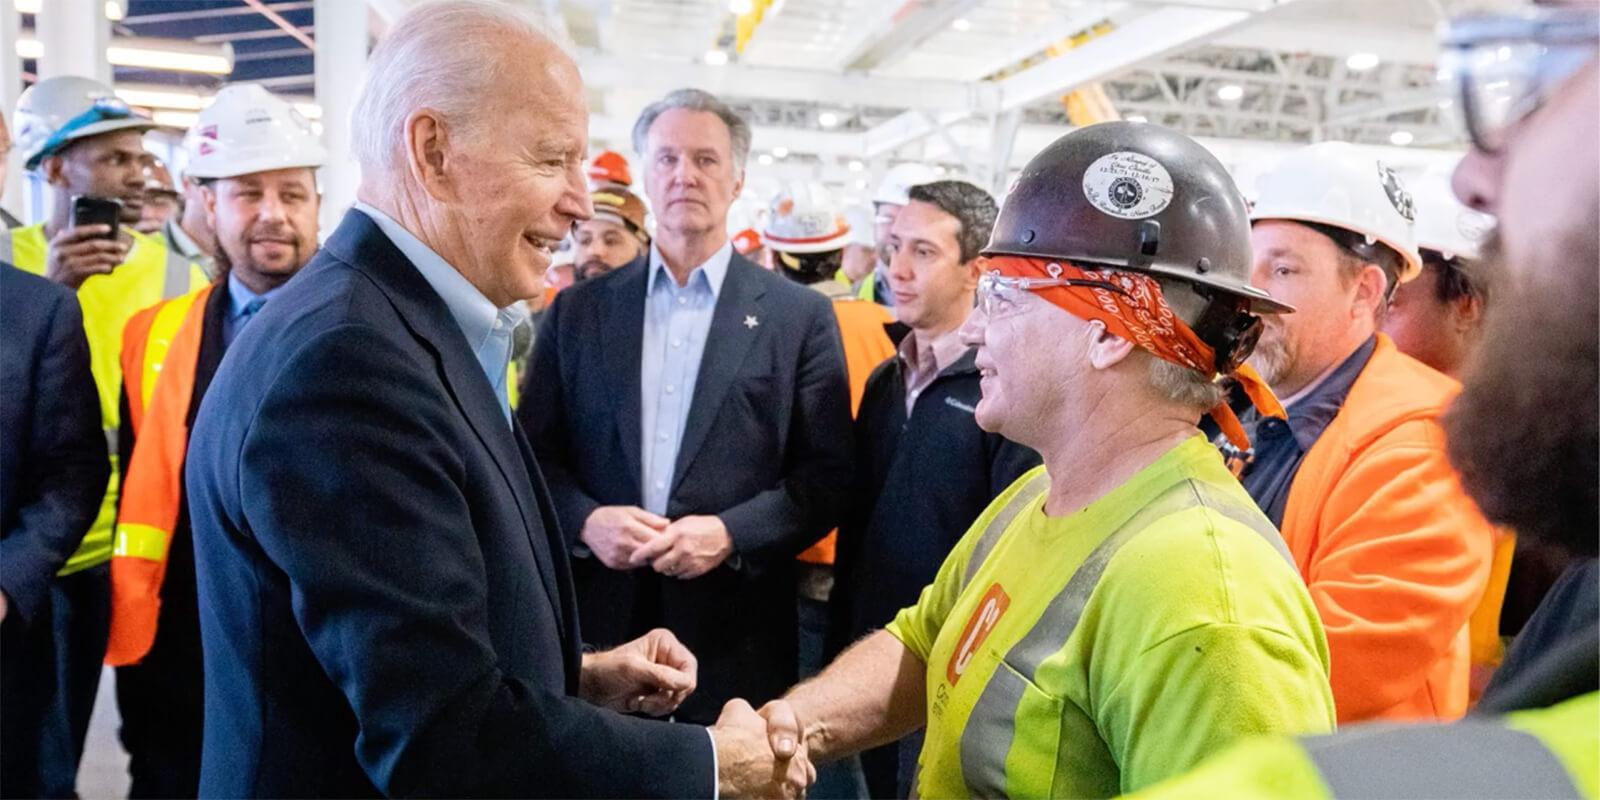 Joe Biden and workers